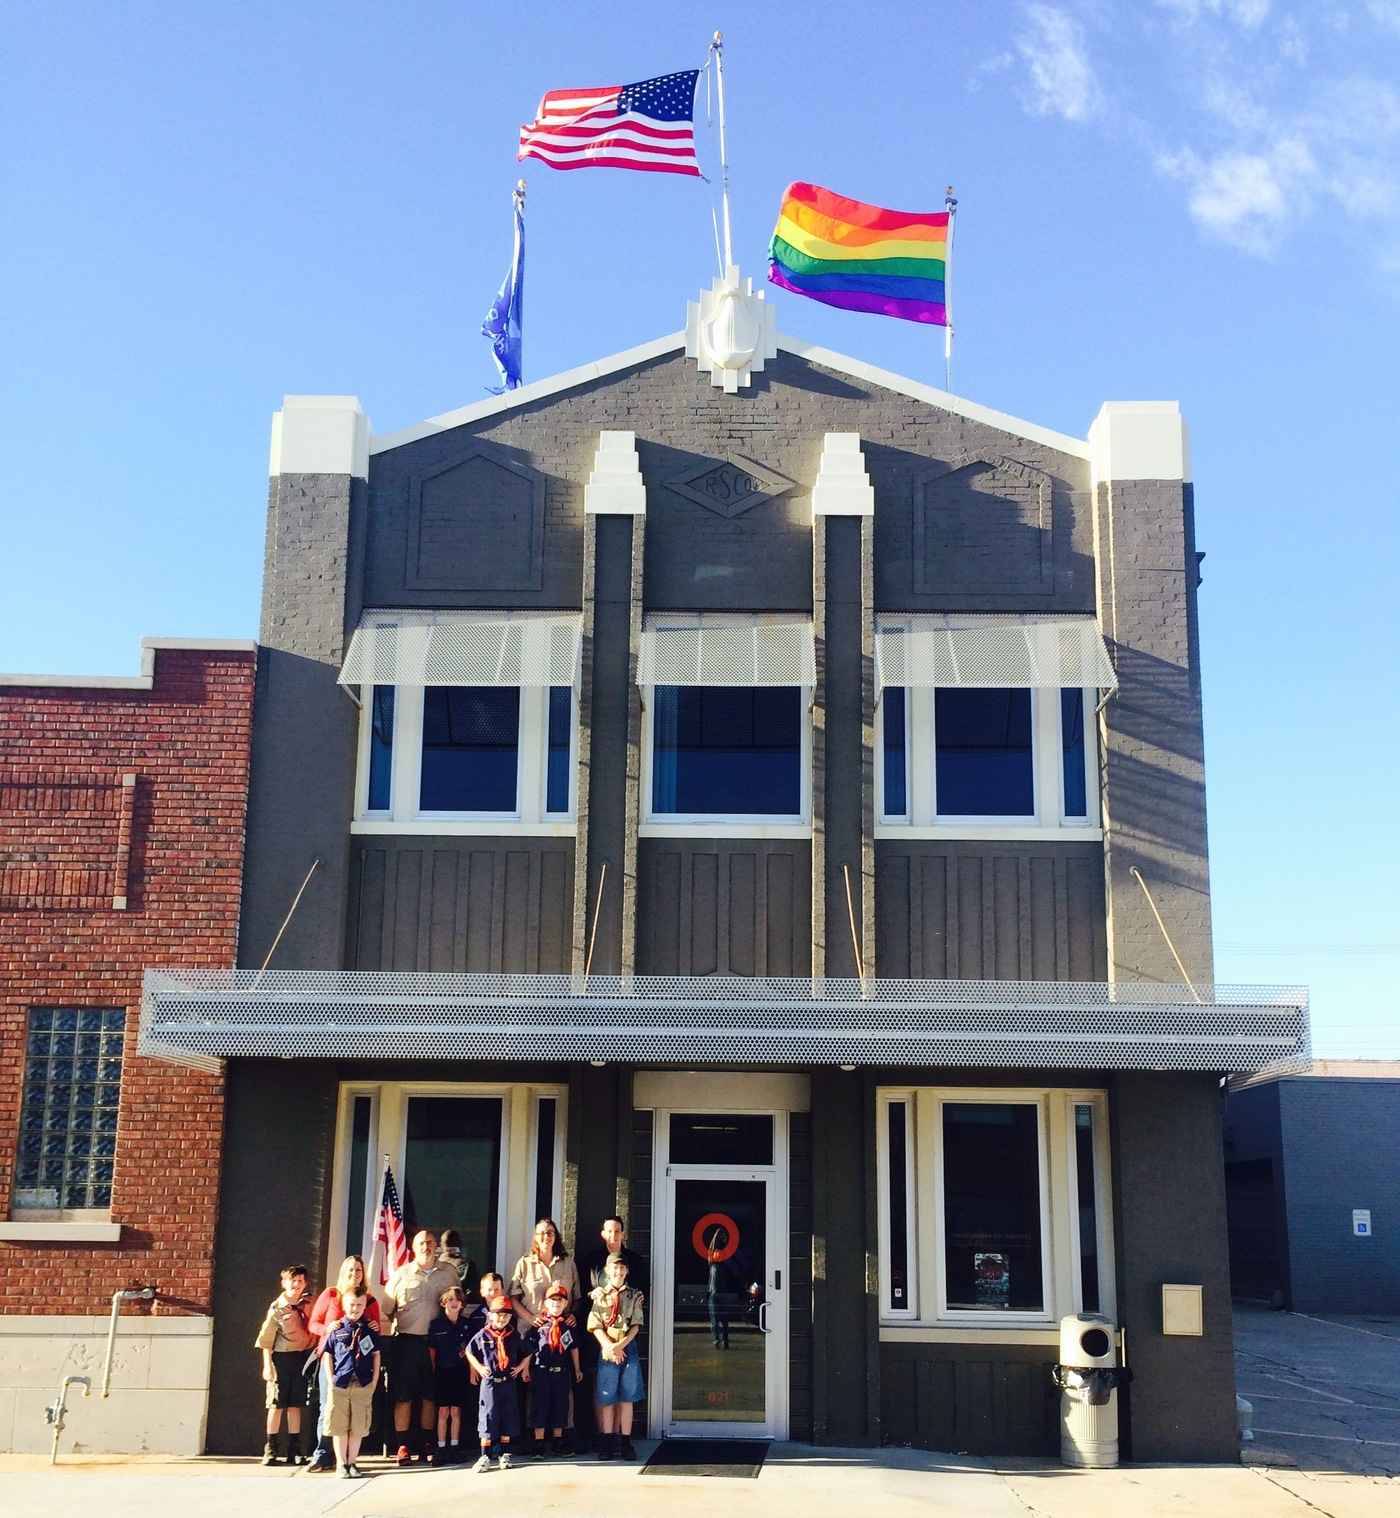 A rainbow flag flies above the Oklahomans for Equality community center in Tulsa, Okla., where Andy Grimes' Cub Scout pack gathers for meetings. (Amy Gastelum)